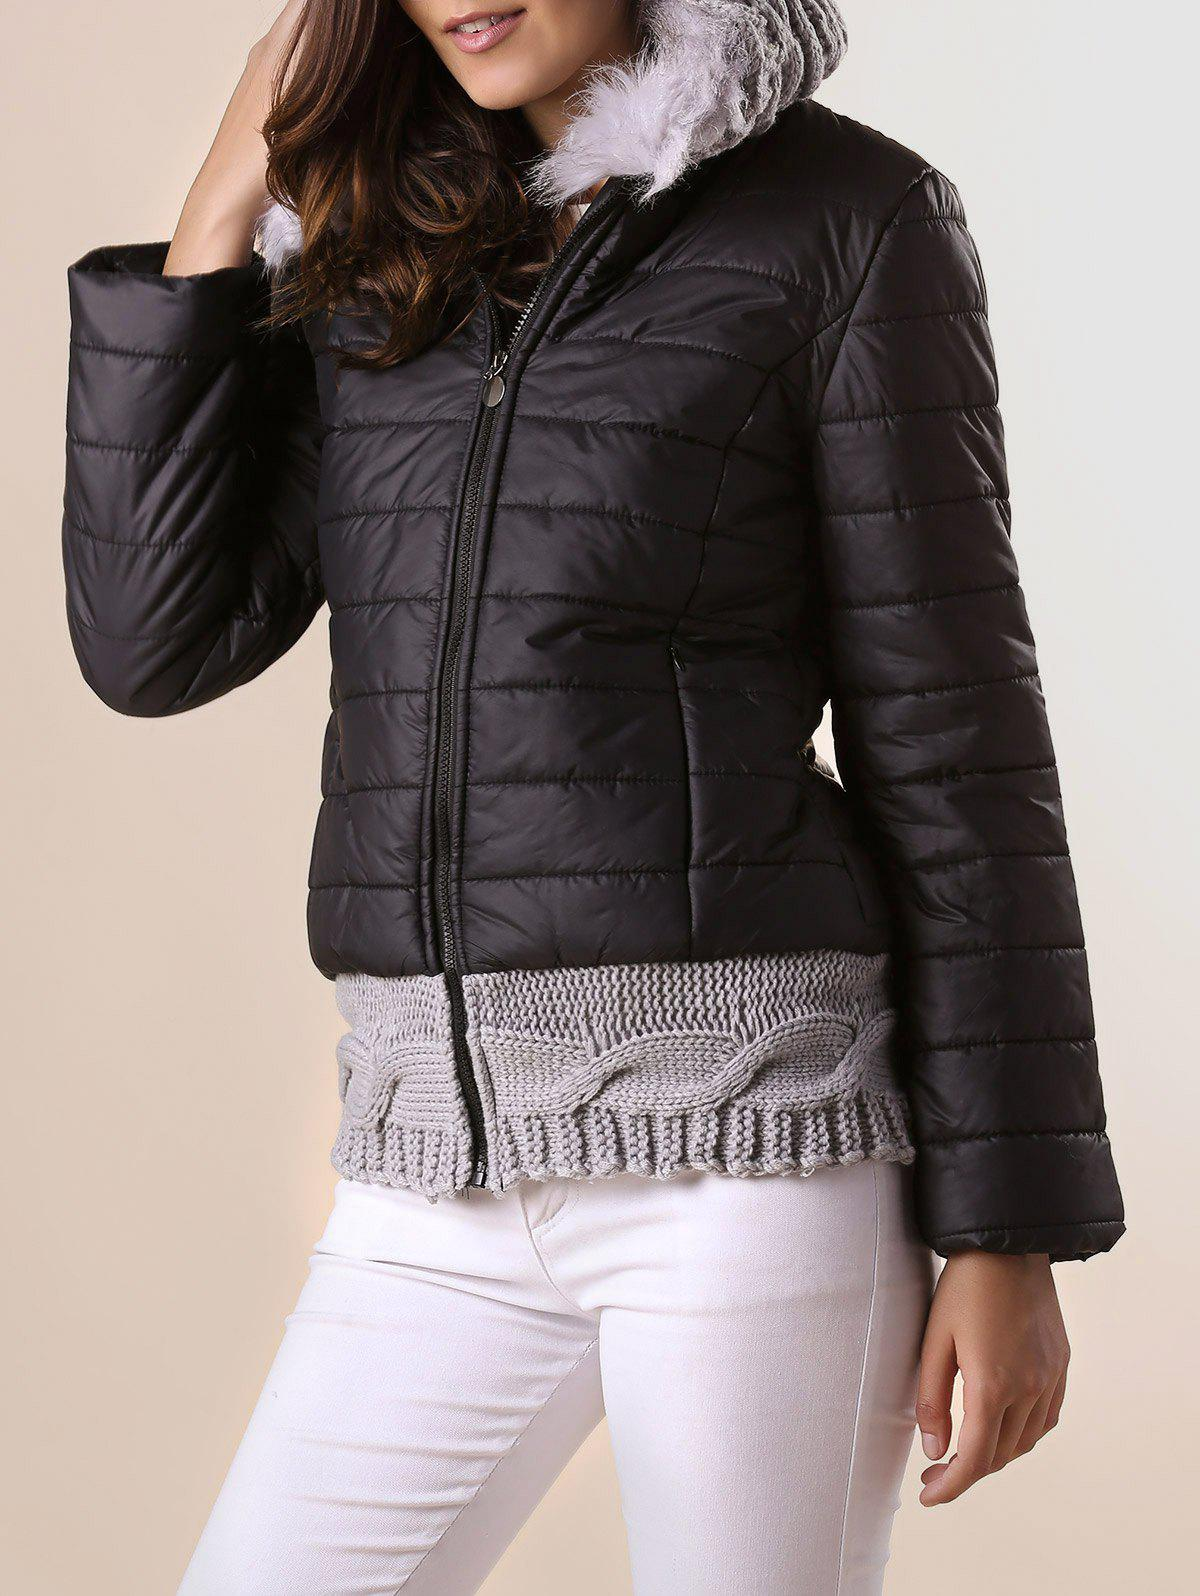 Stylish Hooded Knitted Splicing Long Sleeve Down Coat For Women - BLACK L